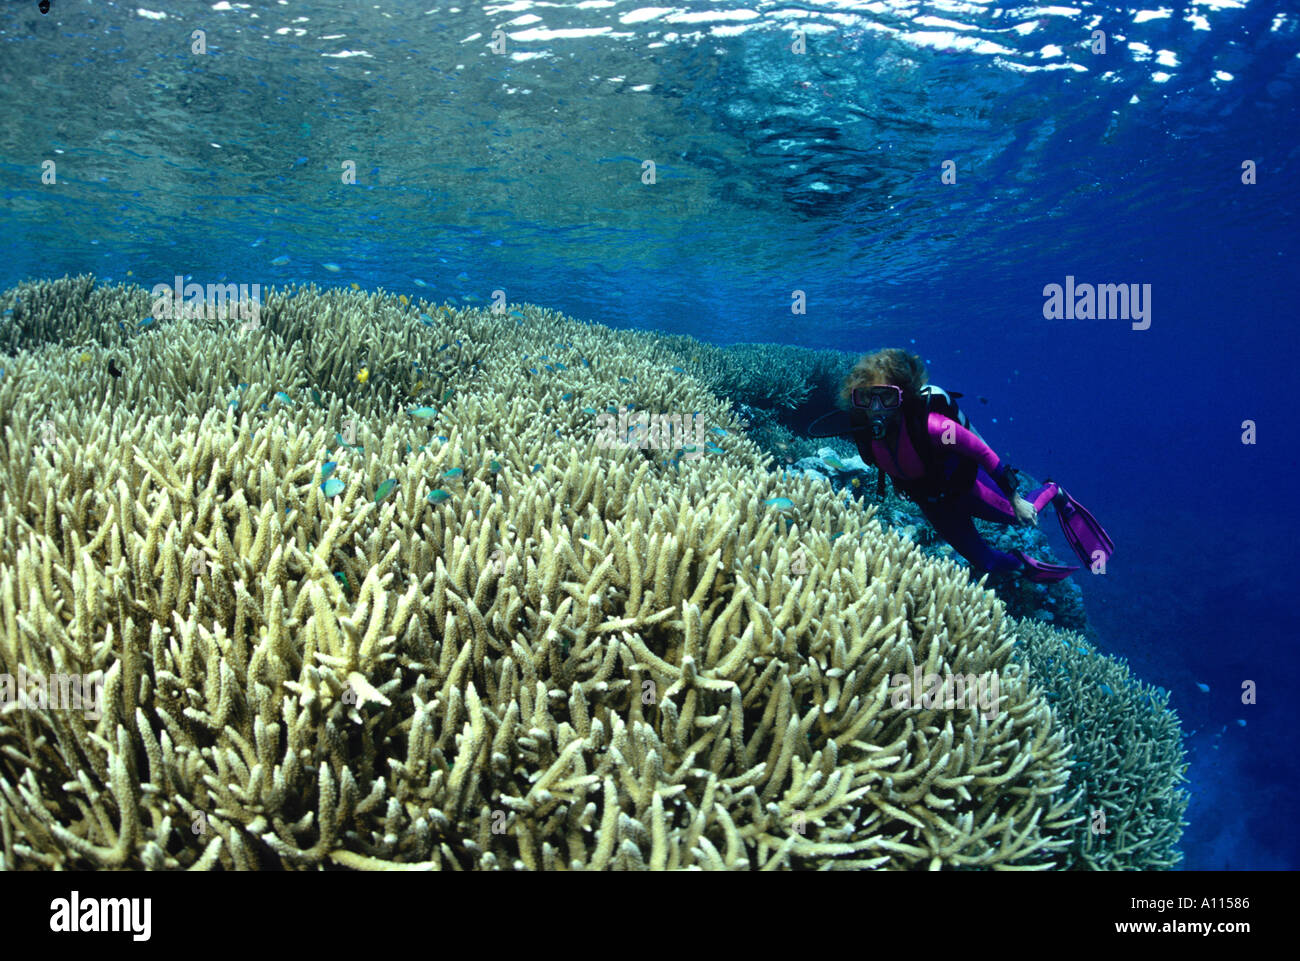 Scuba Divers On One New Stockfotos & Scuba Divers On One New Bilder ...